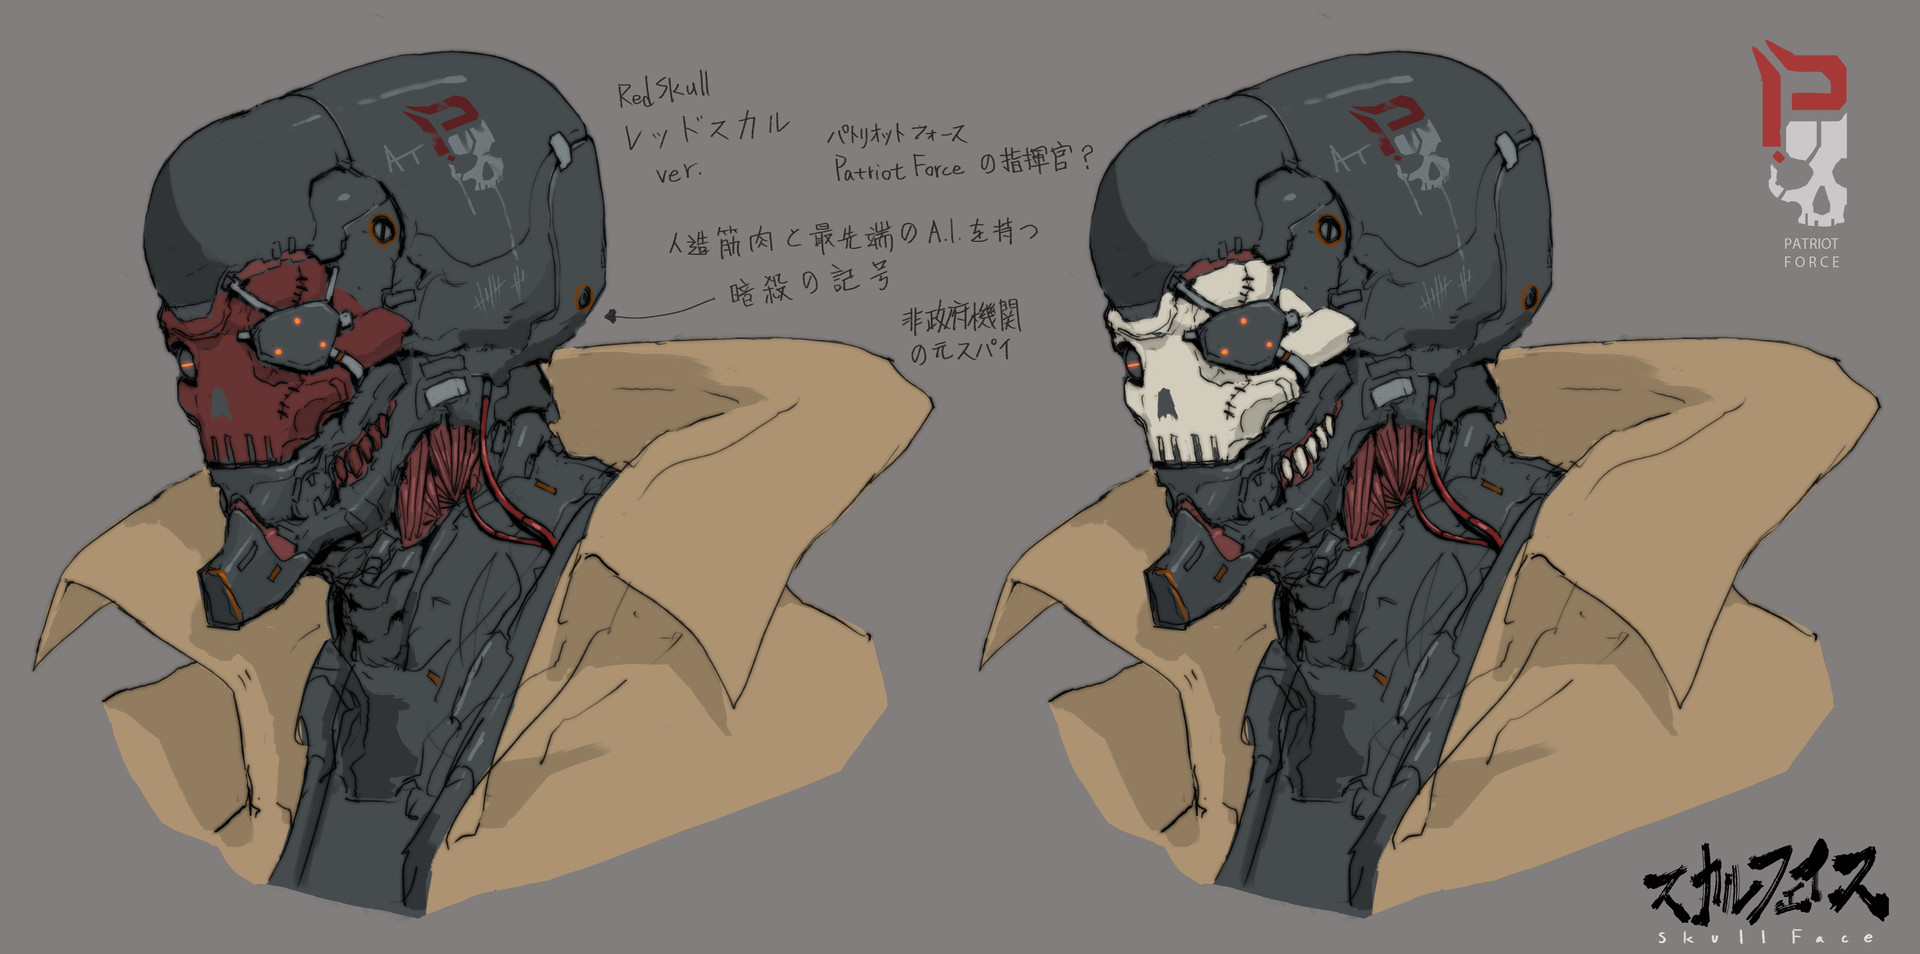 Ching yeh skull face